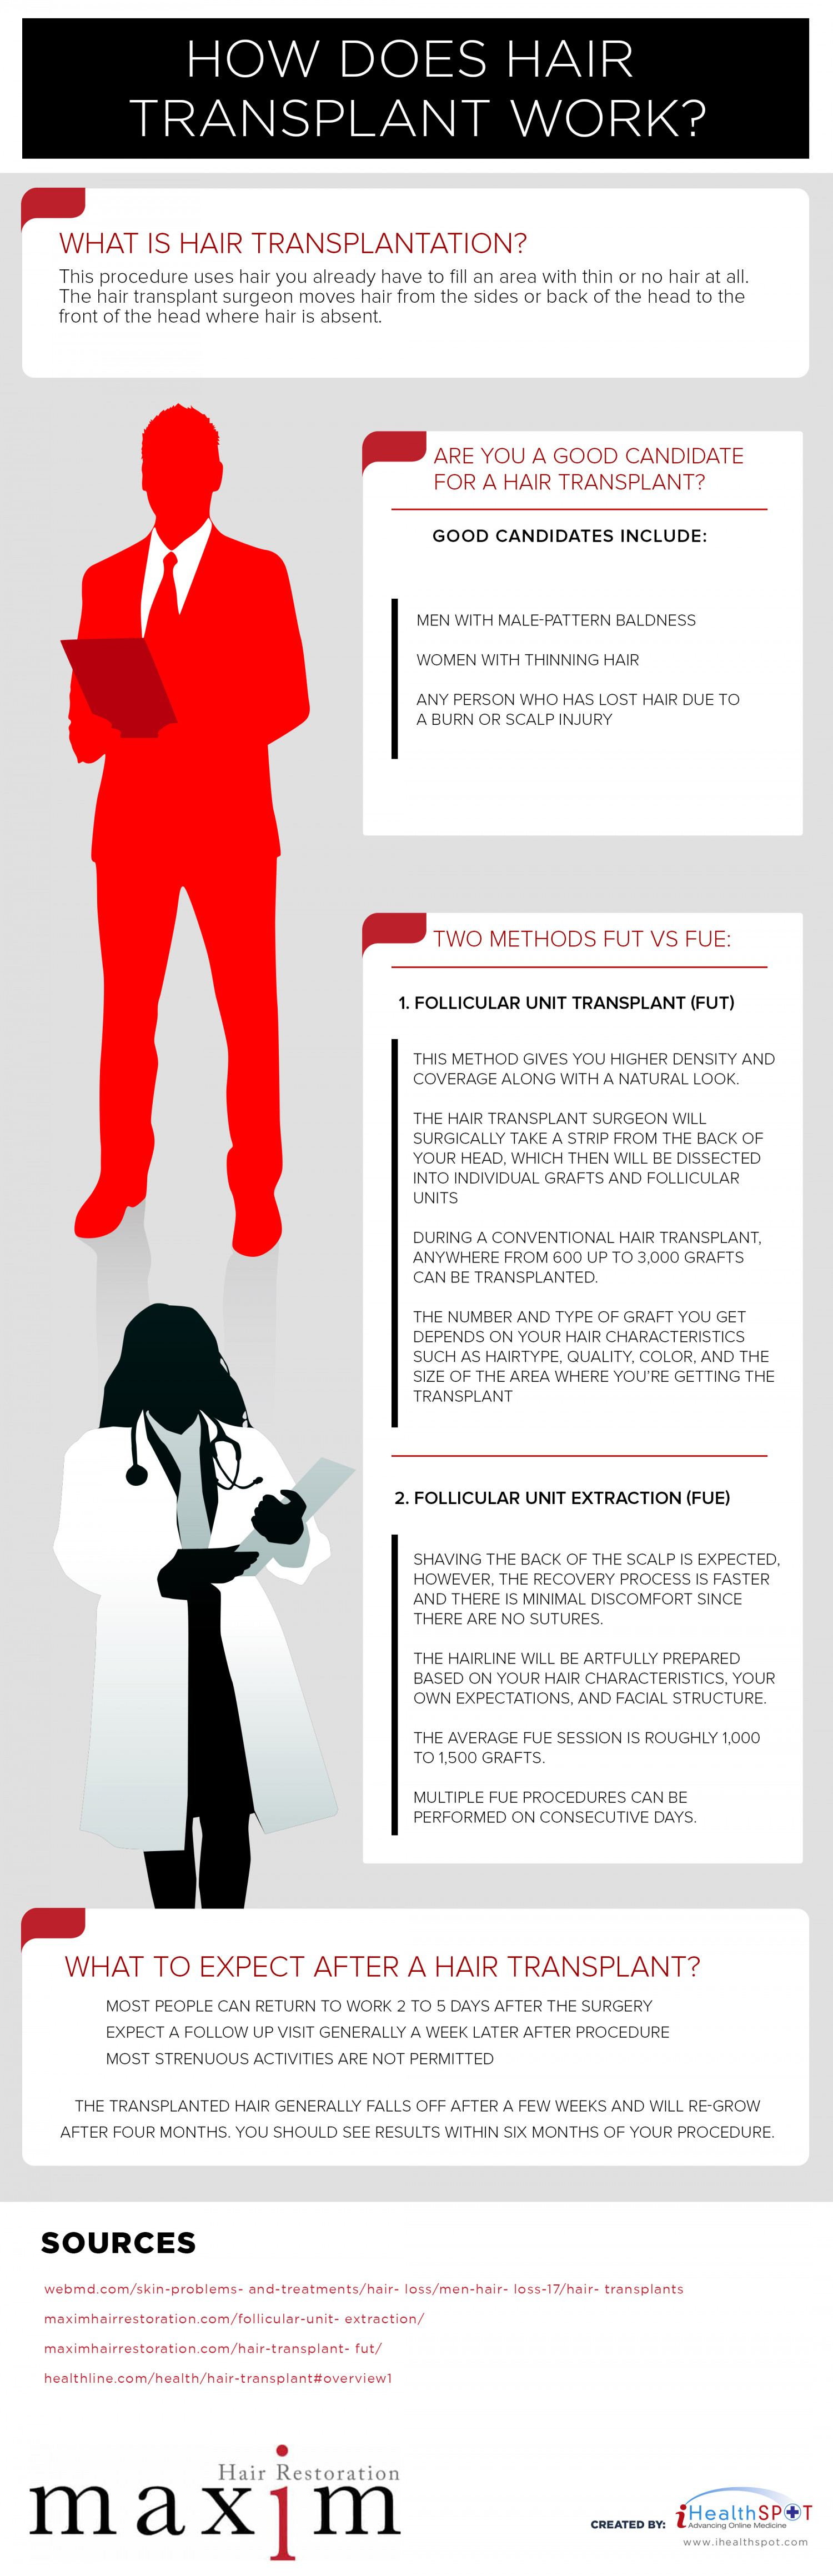 How Does Hair Transplant Work? Infographic